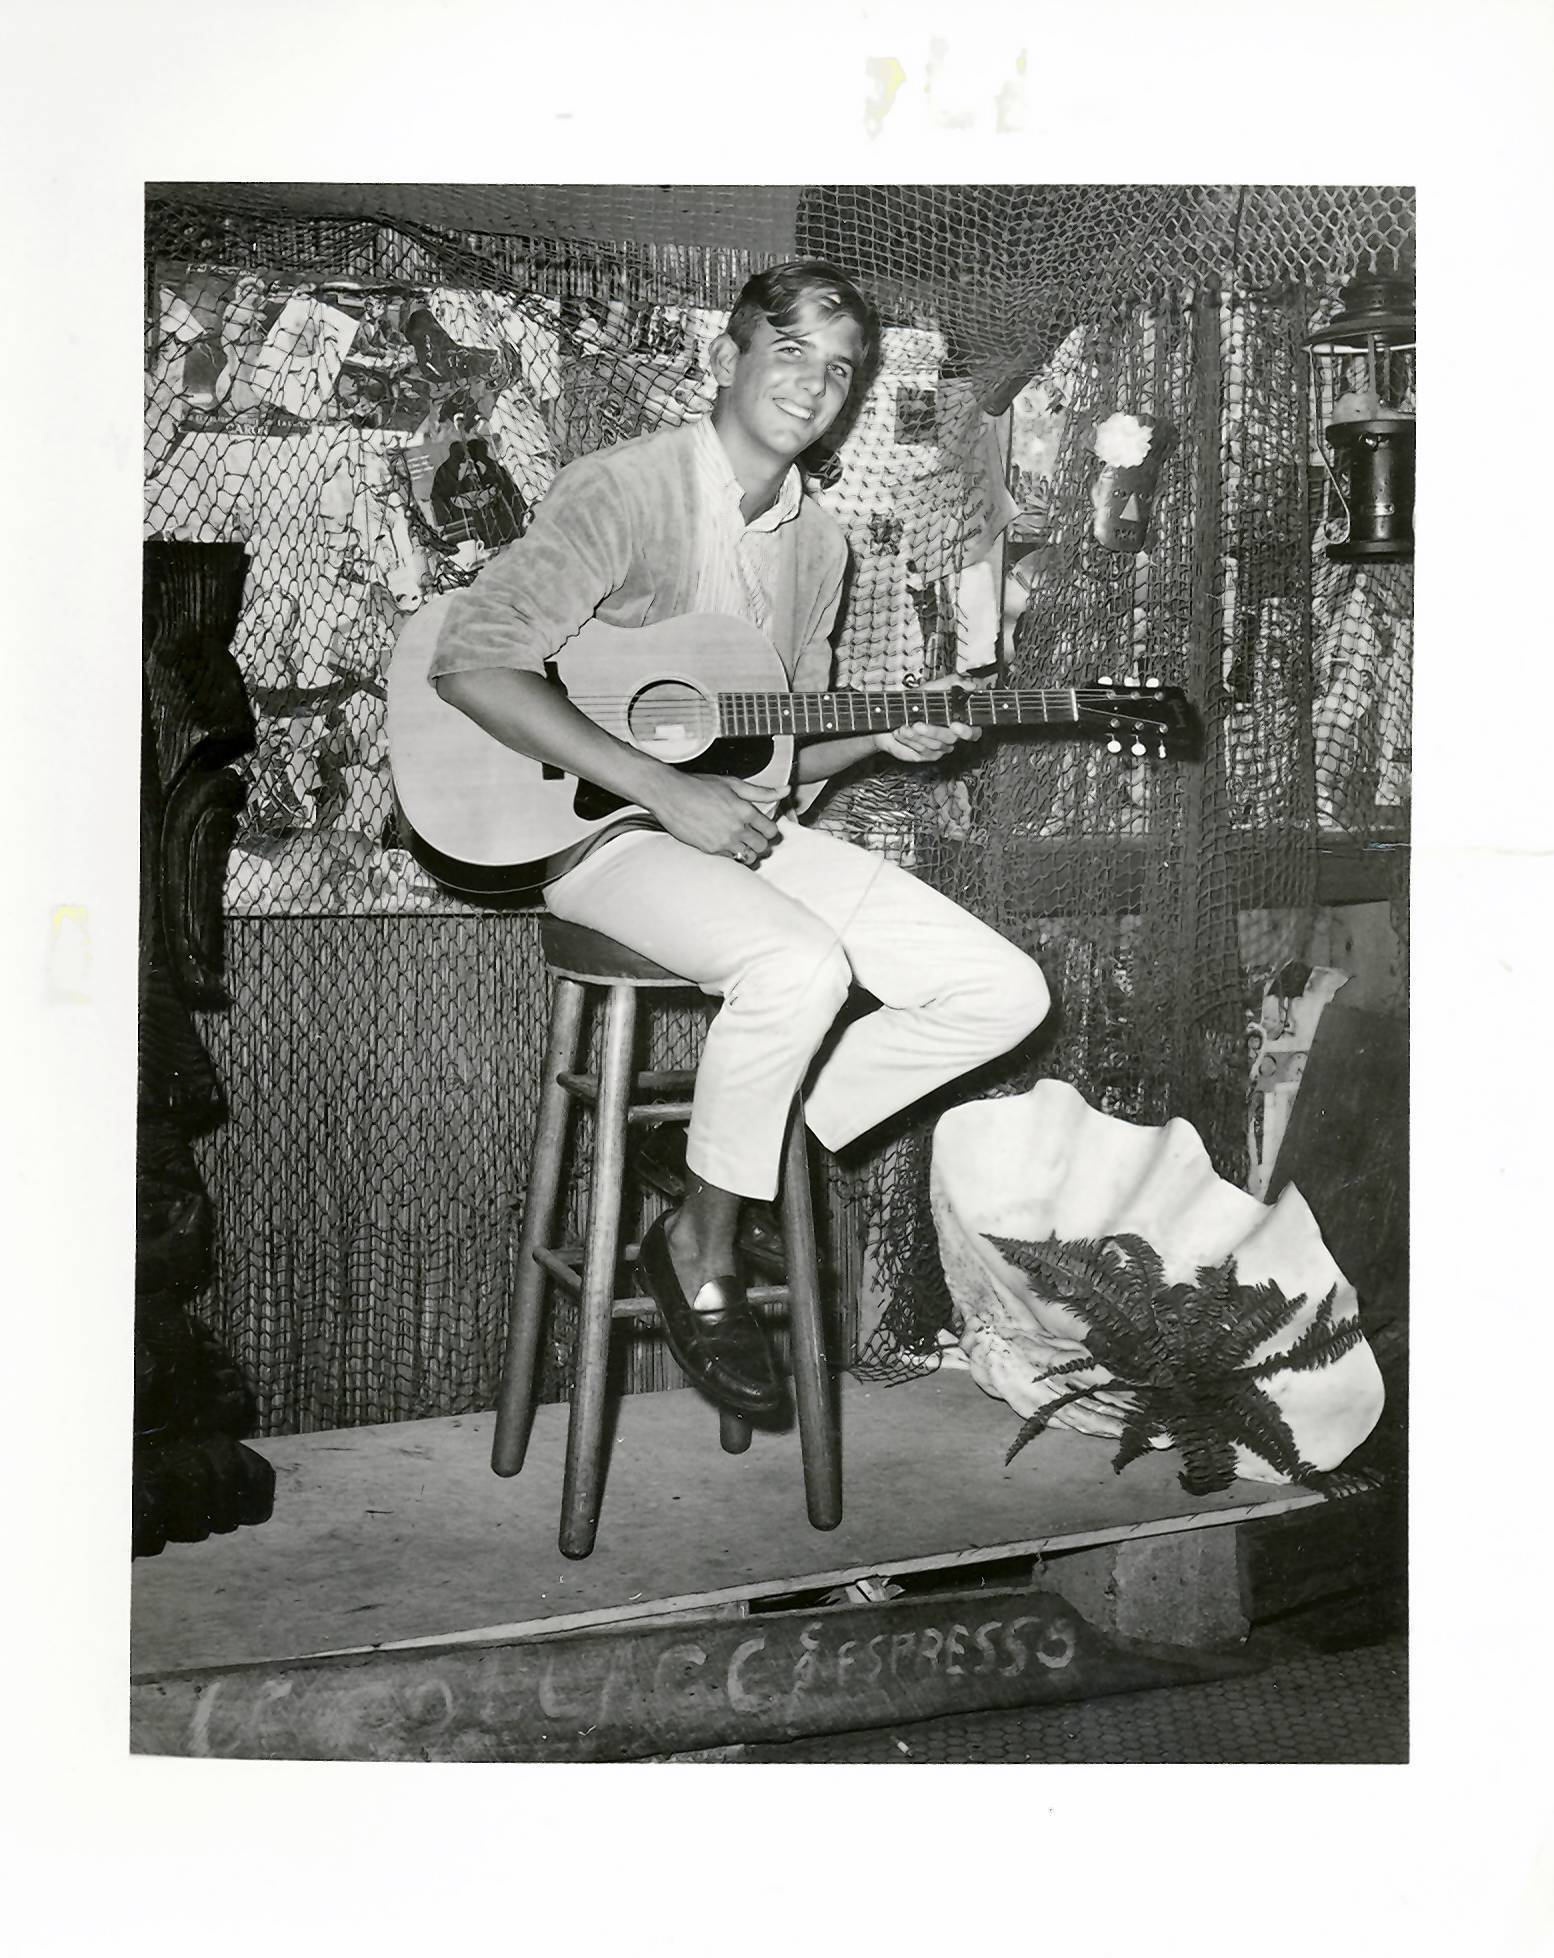 An upcoming book on Gram Parsons focuses on the singer's music in  the context of his life in the South.  The singer is pictured here in his early Florida folk days.